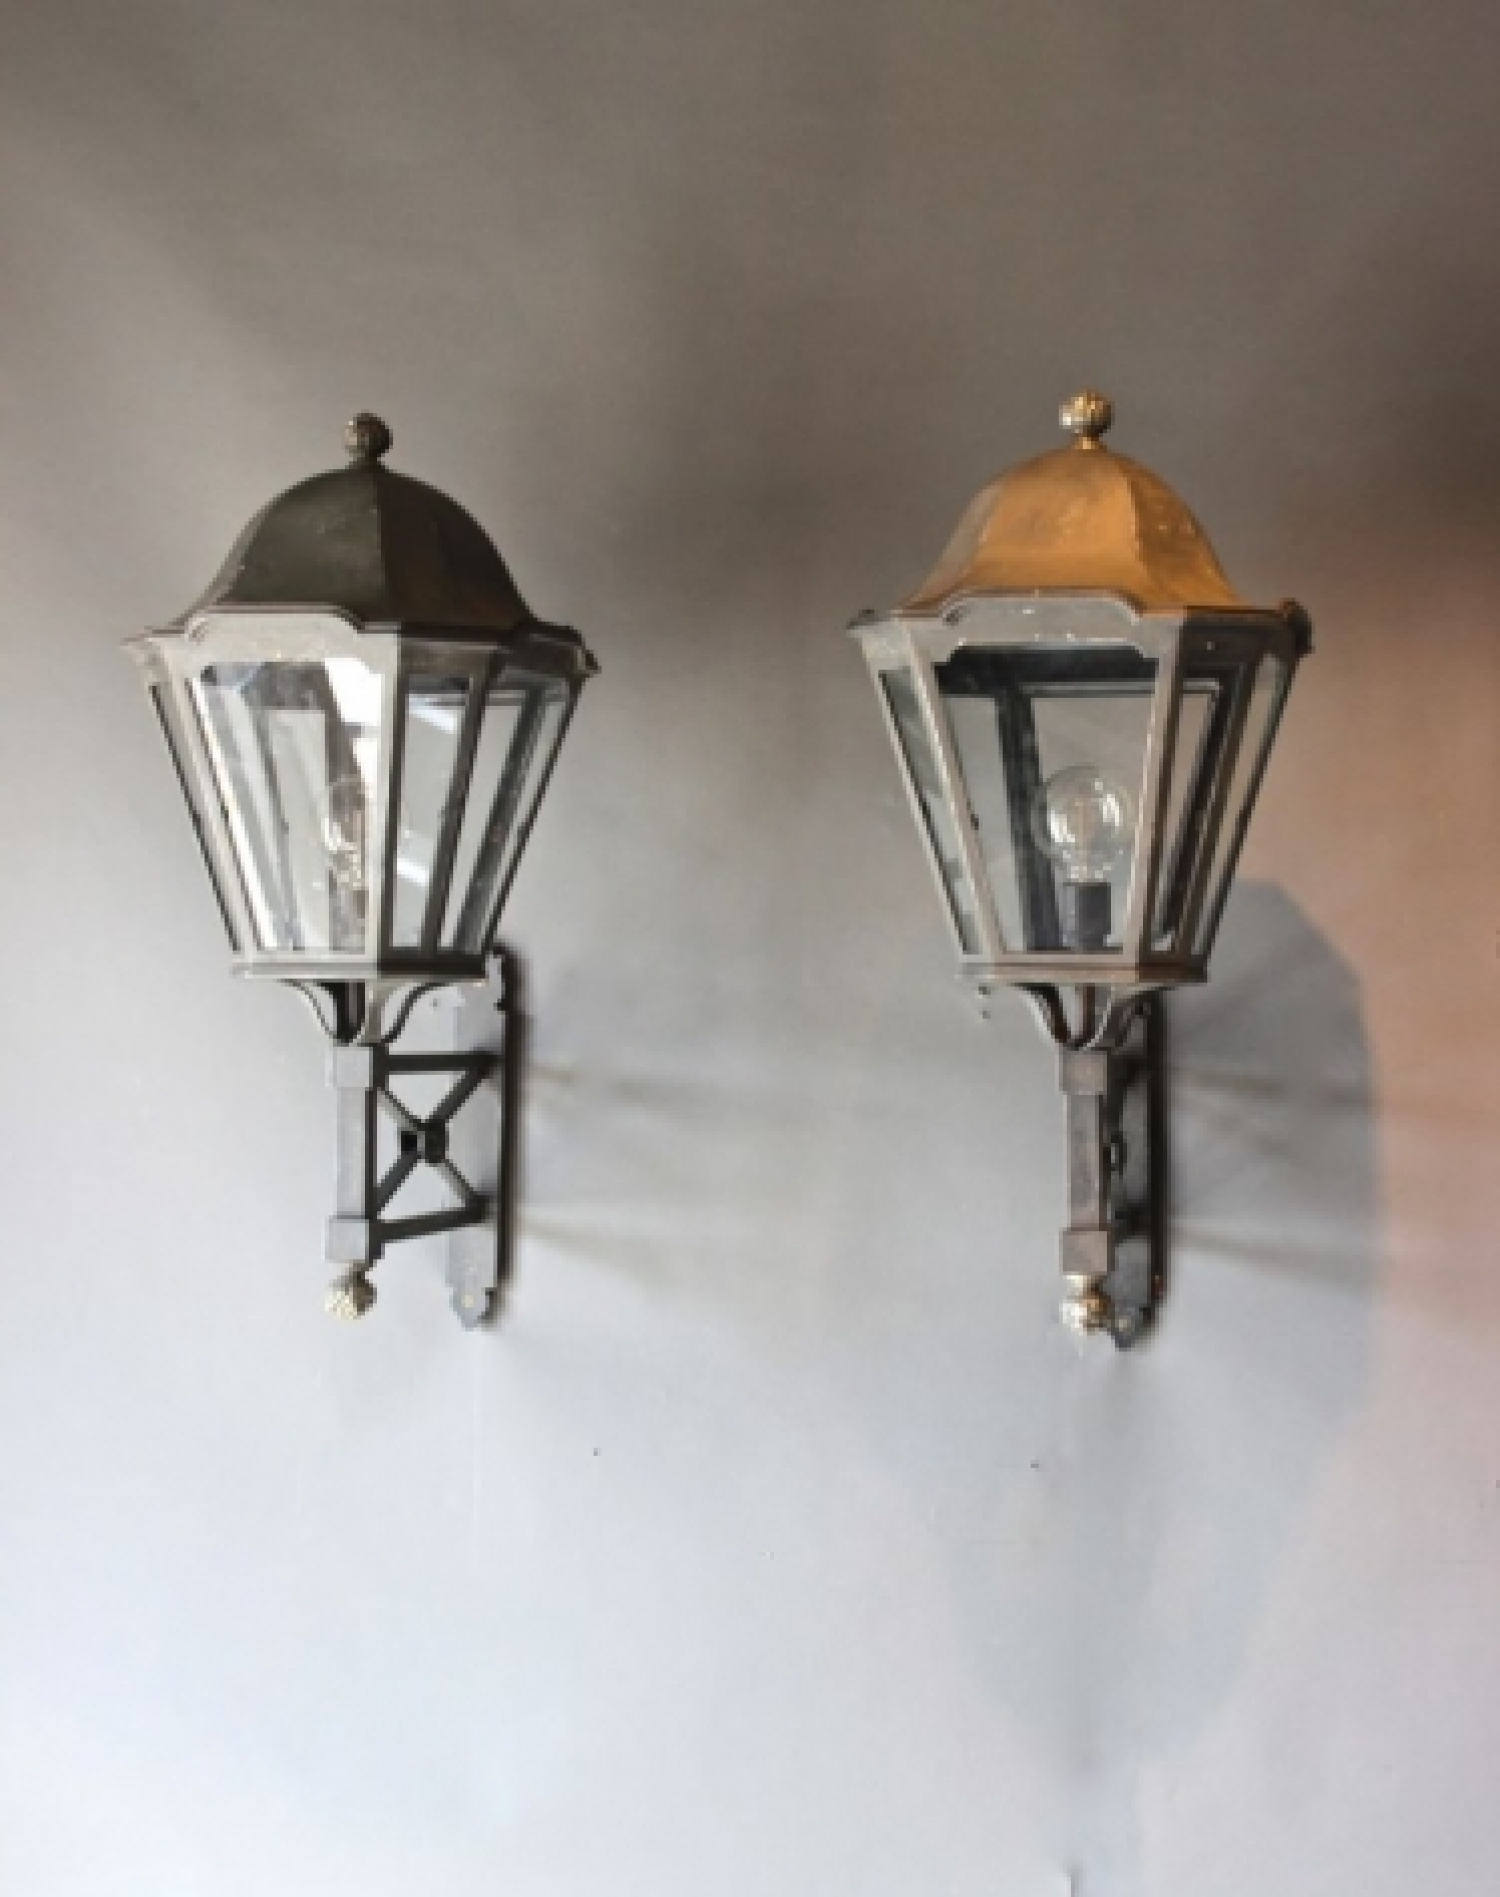 Antique Outside Lighting – Norfolk Decorative Antiques With Regard To Newest Antique Outdoor Lanterns (View 5 of 20)